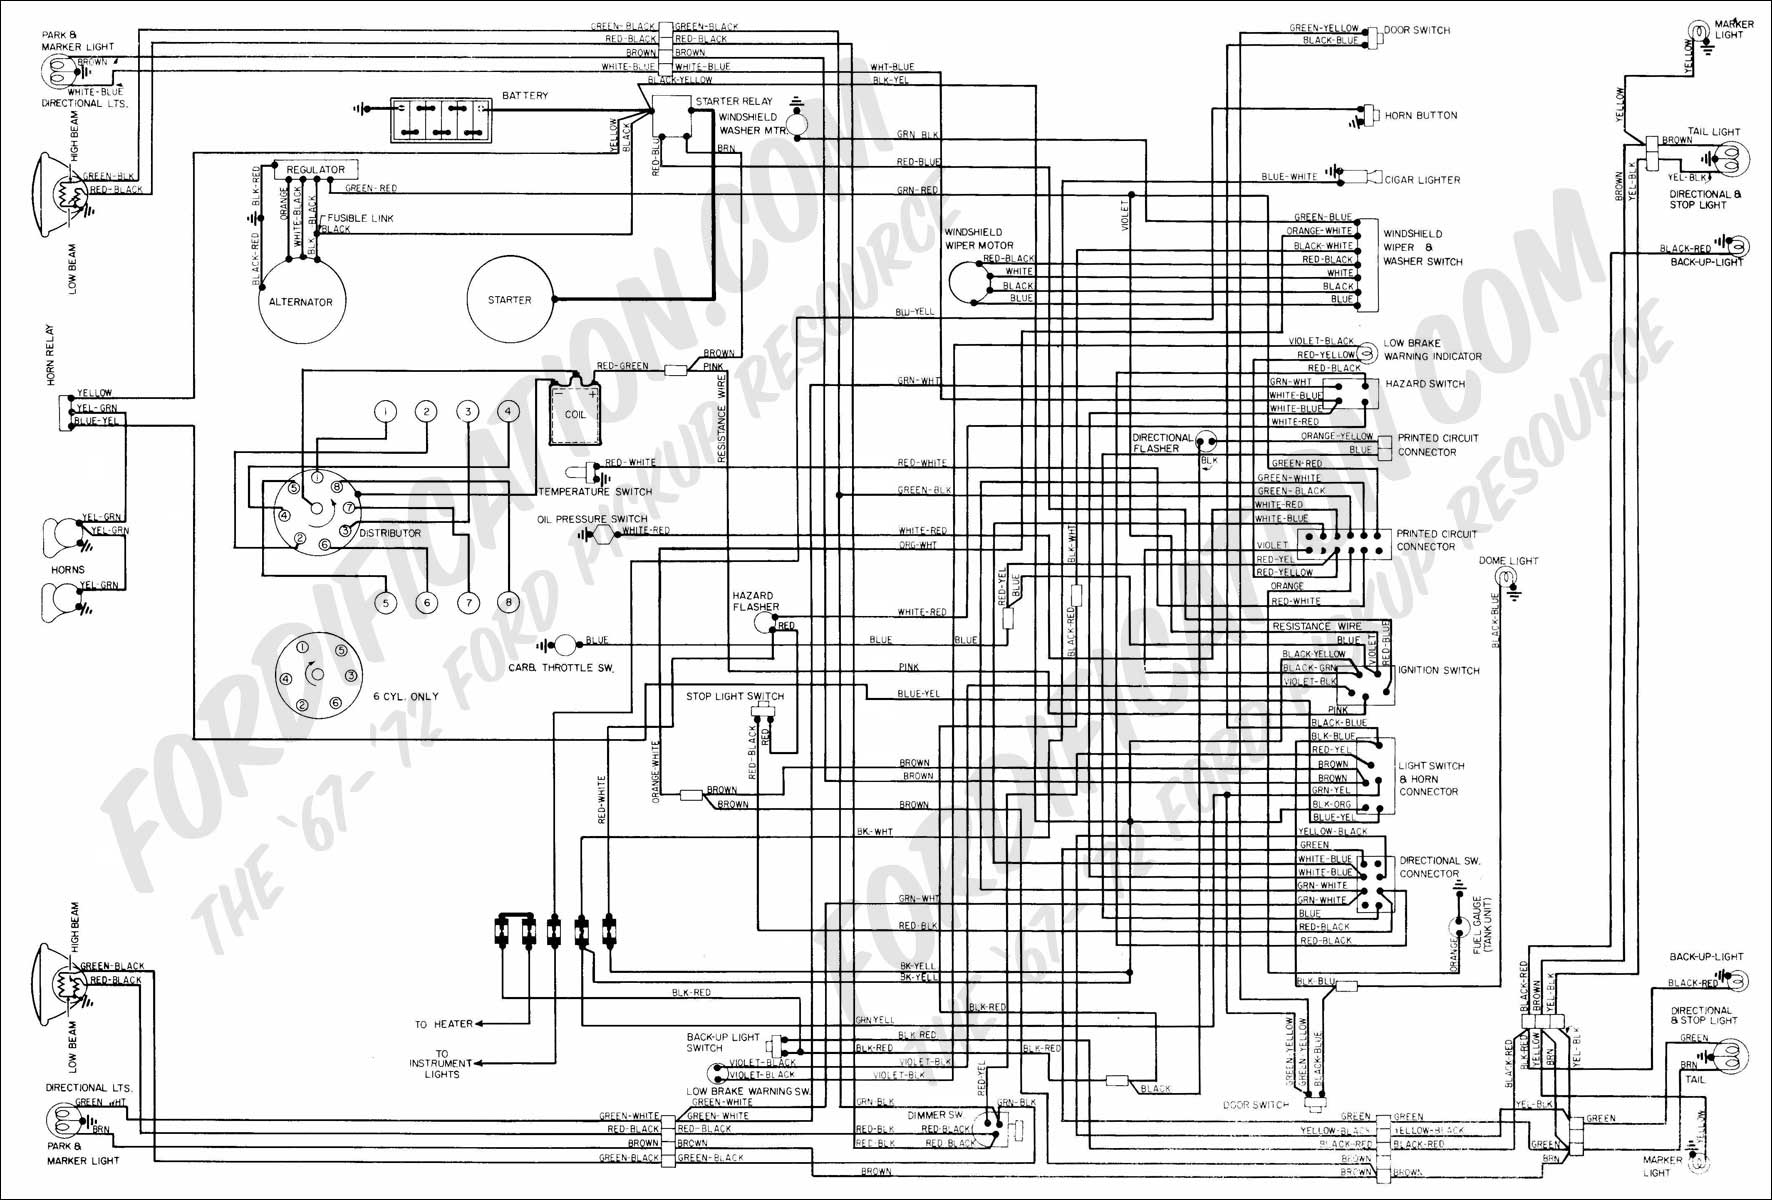 vw beetle wiring diagram pdf with Schematics H on Signals besides 3wed3 Fault Code P1296 Engine Cooling Malfunction besides Iemand Verstand Van Draadbomen 1 also Sae J1772 Schematic besides 1973 VW Thing Wiring Diagram.